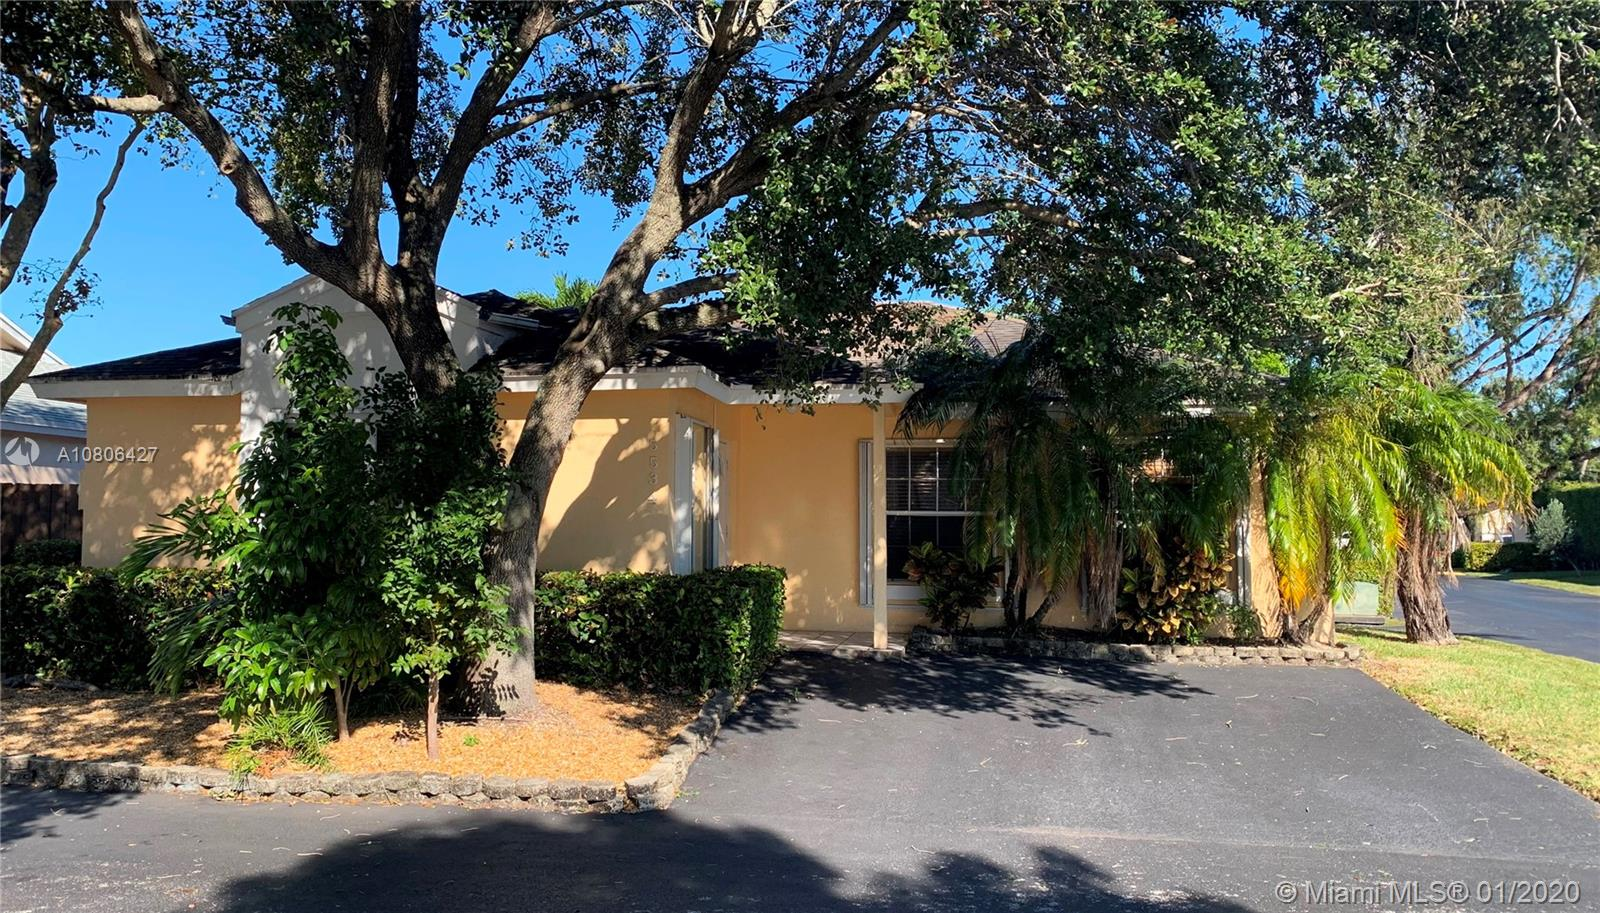 5534 NW 101st Ct, Doral in Miami-dade County County, FL 33178 Home for Sale